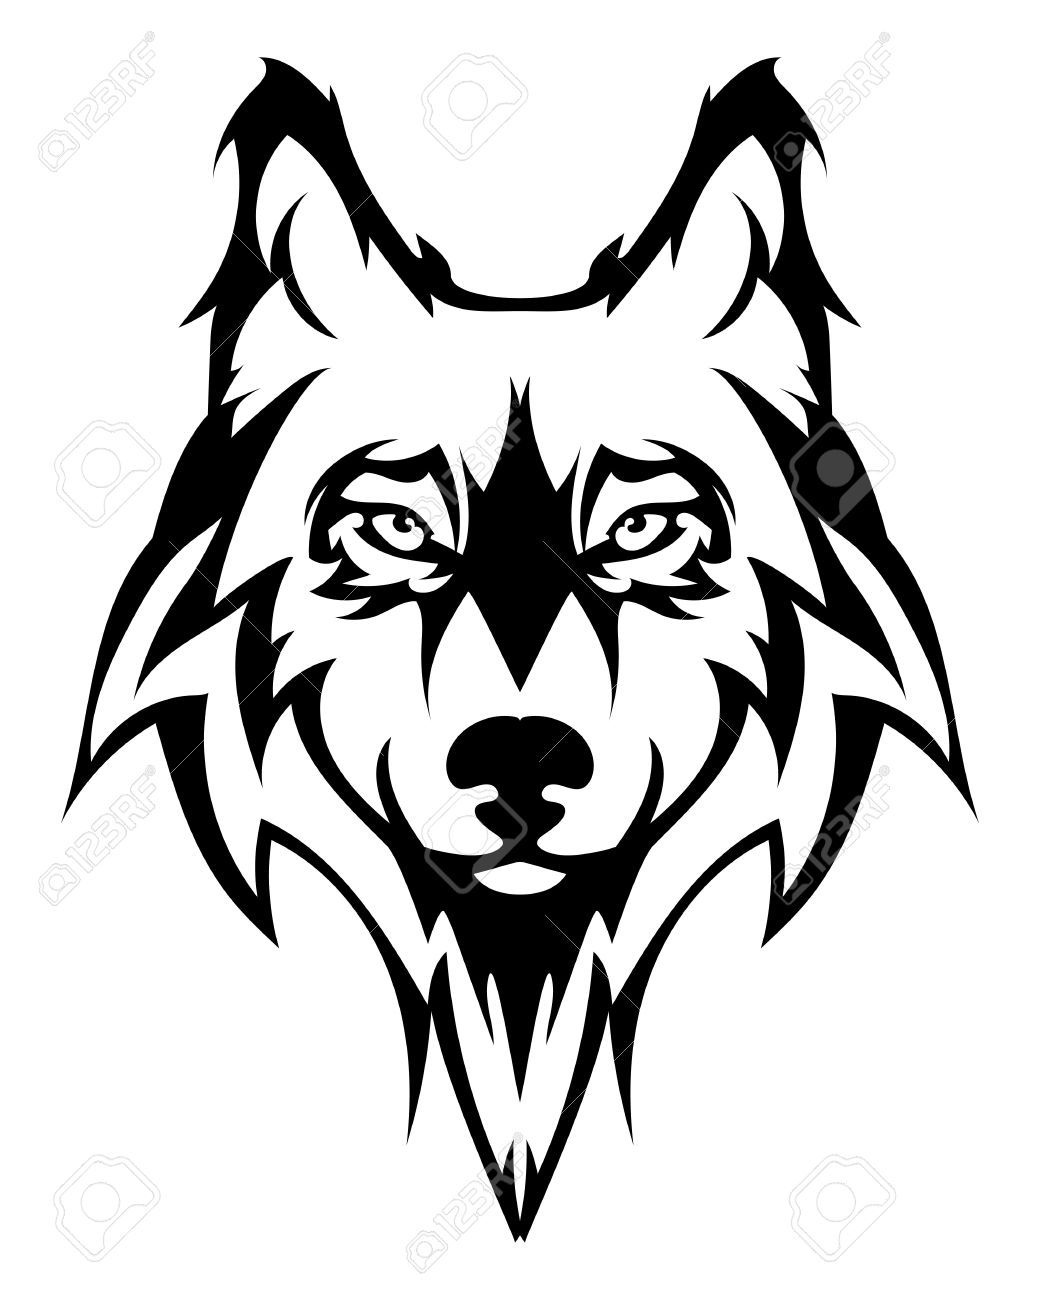 Wolf Head Silhouette Vector at GetDrawings.com.